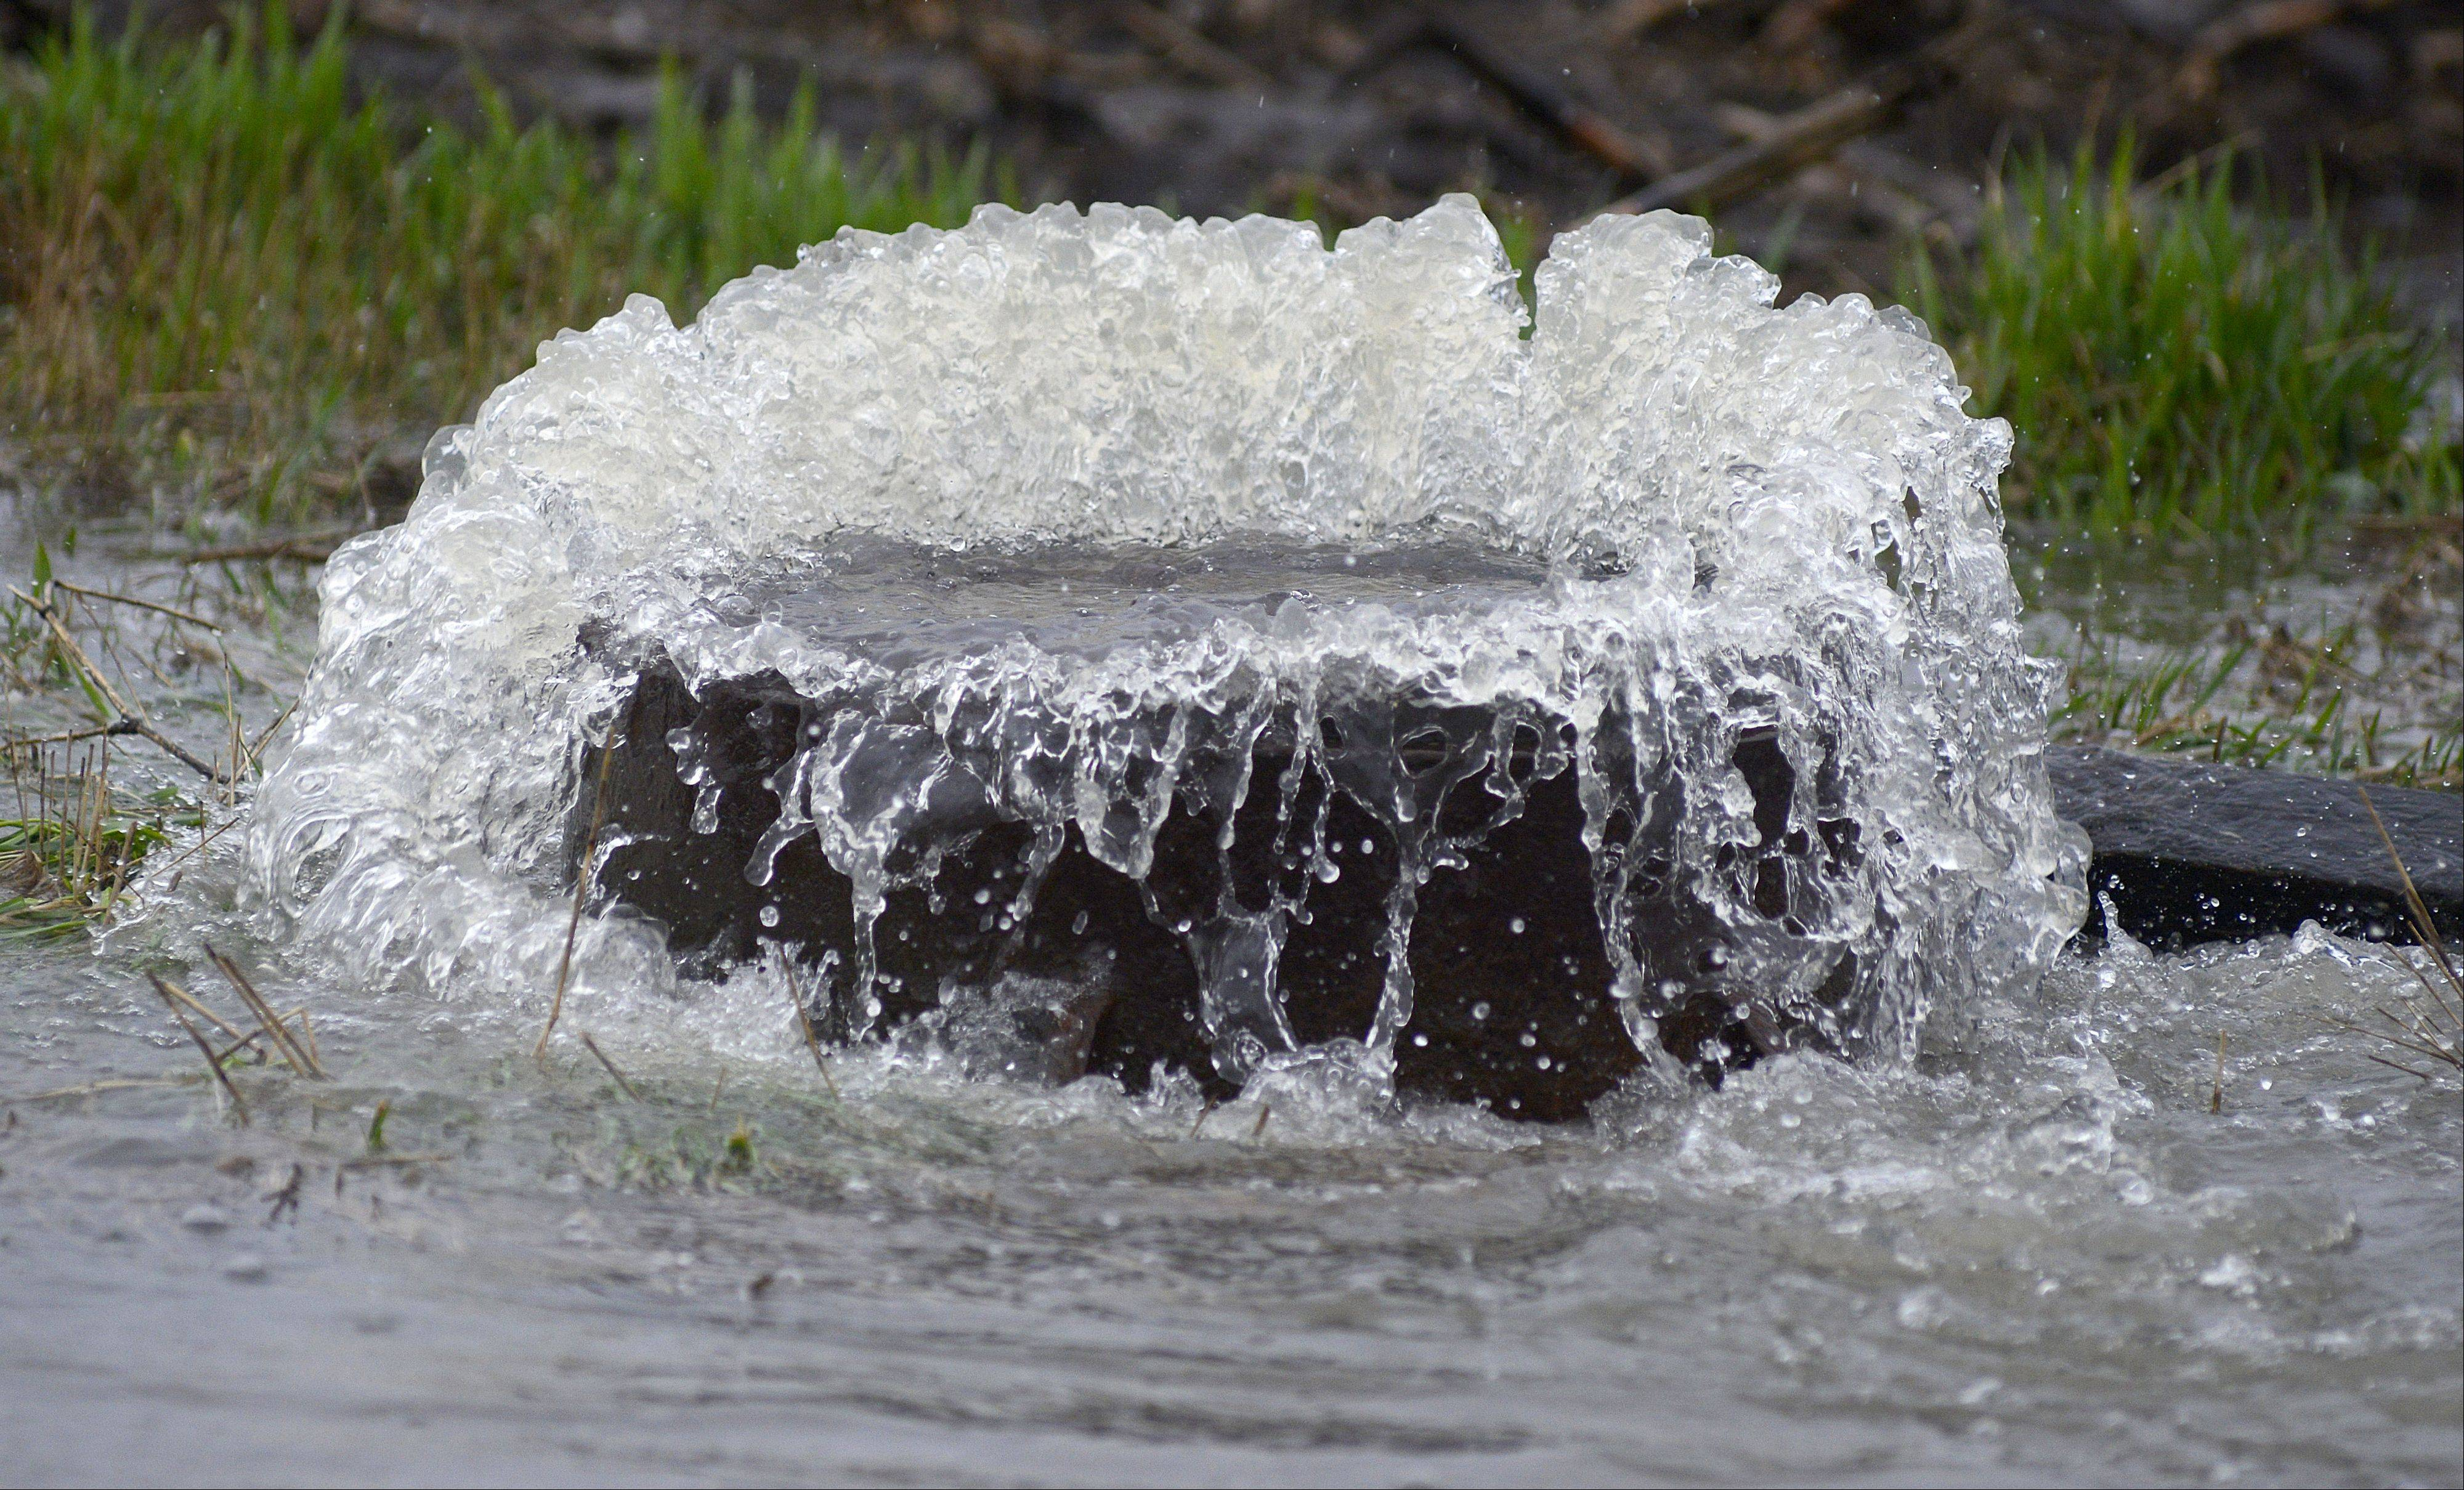 Water bellows from a sewer cap along Route 38 just west of Peck Road in St. Charles on Thursday, April 18.